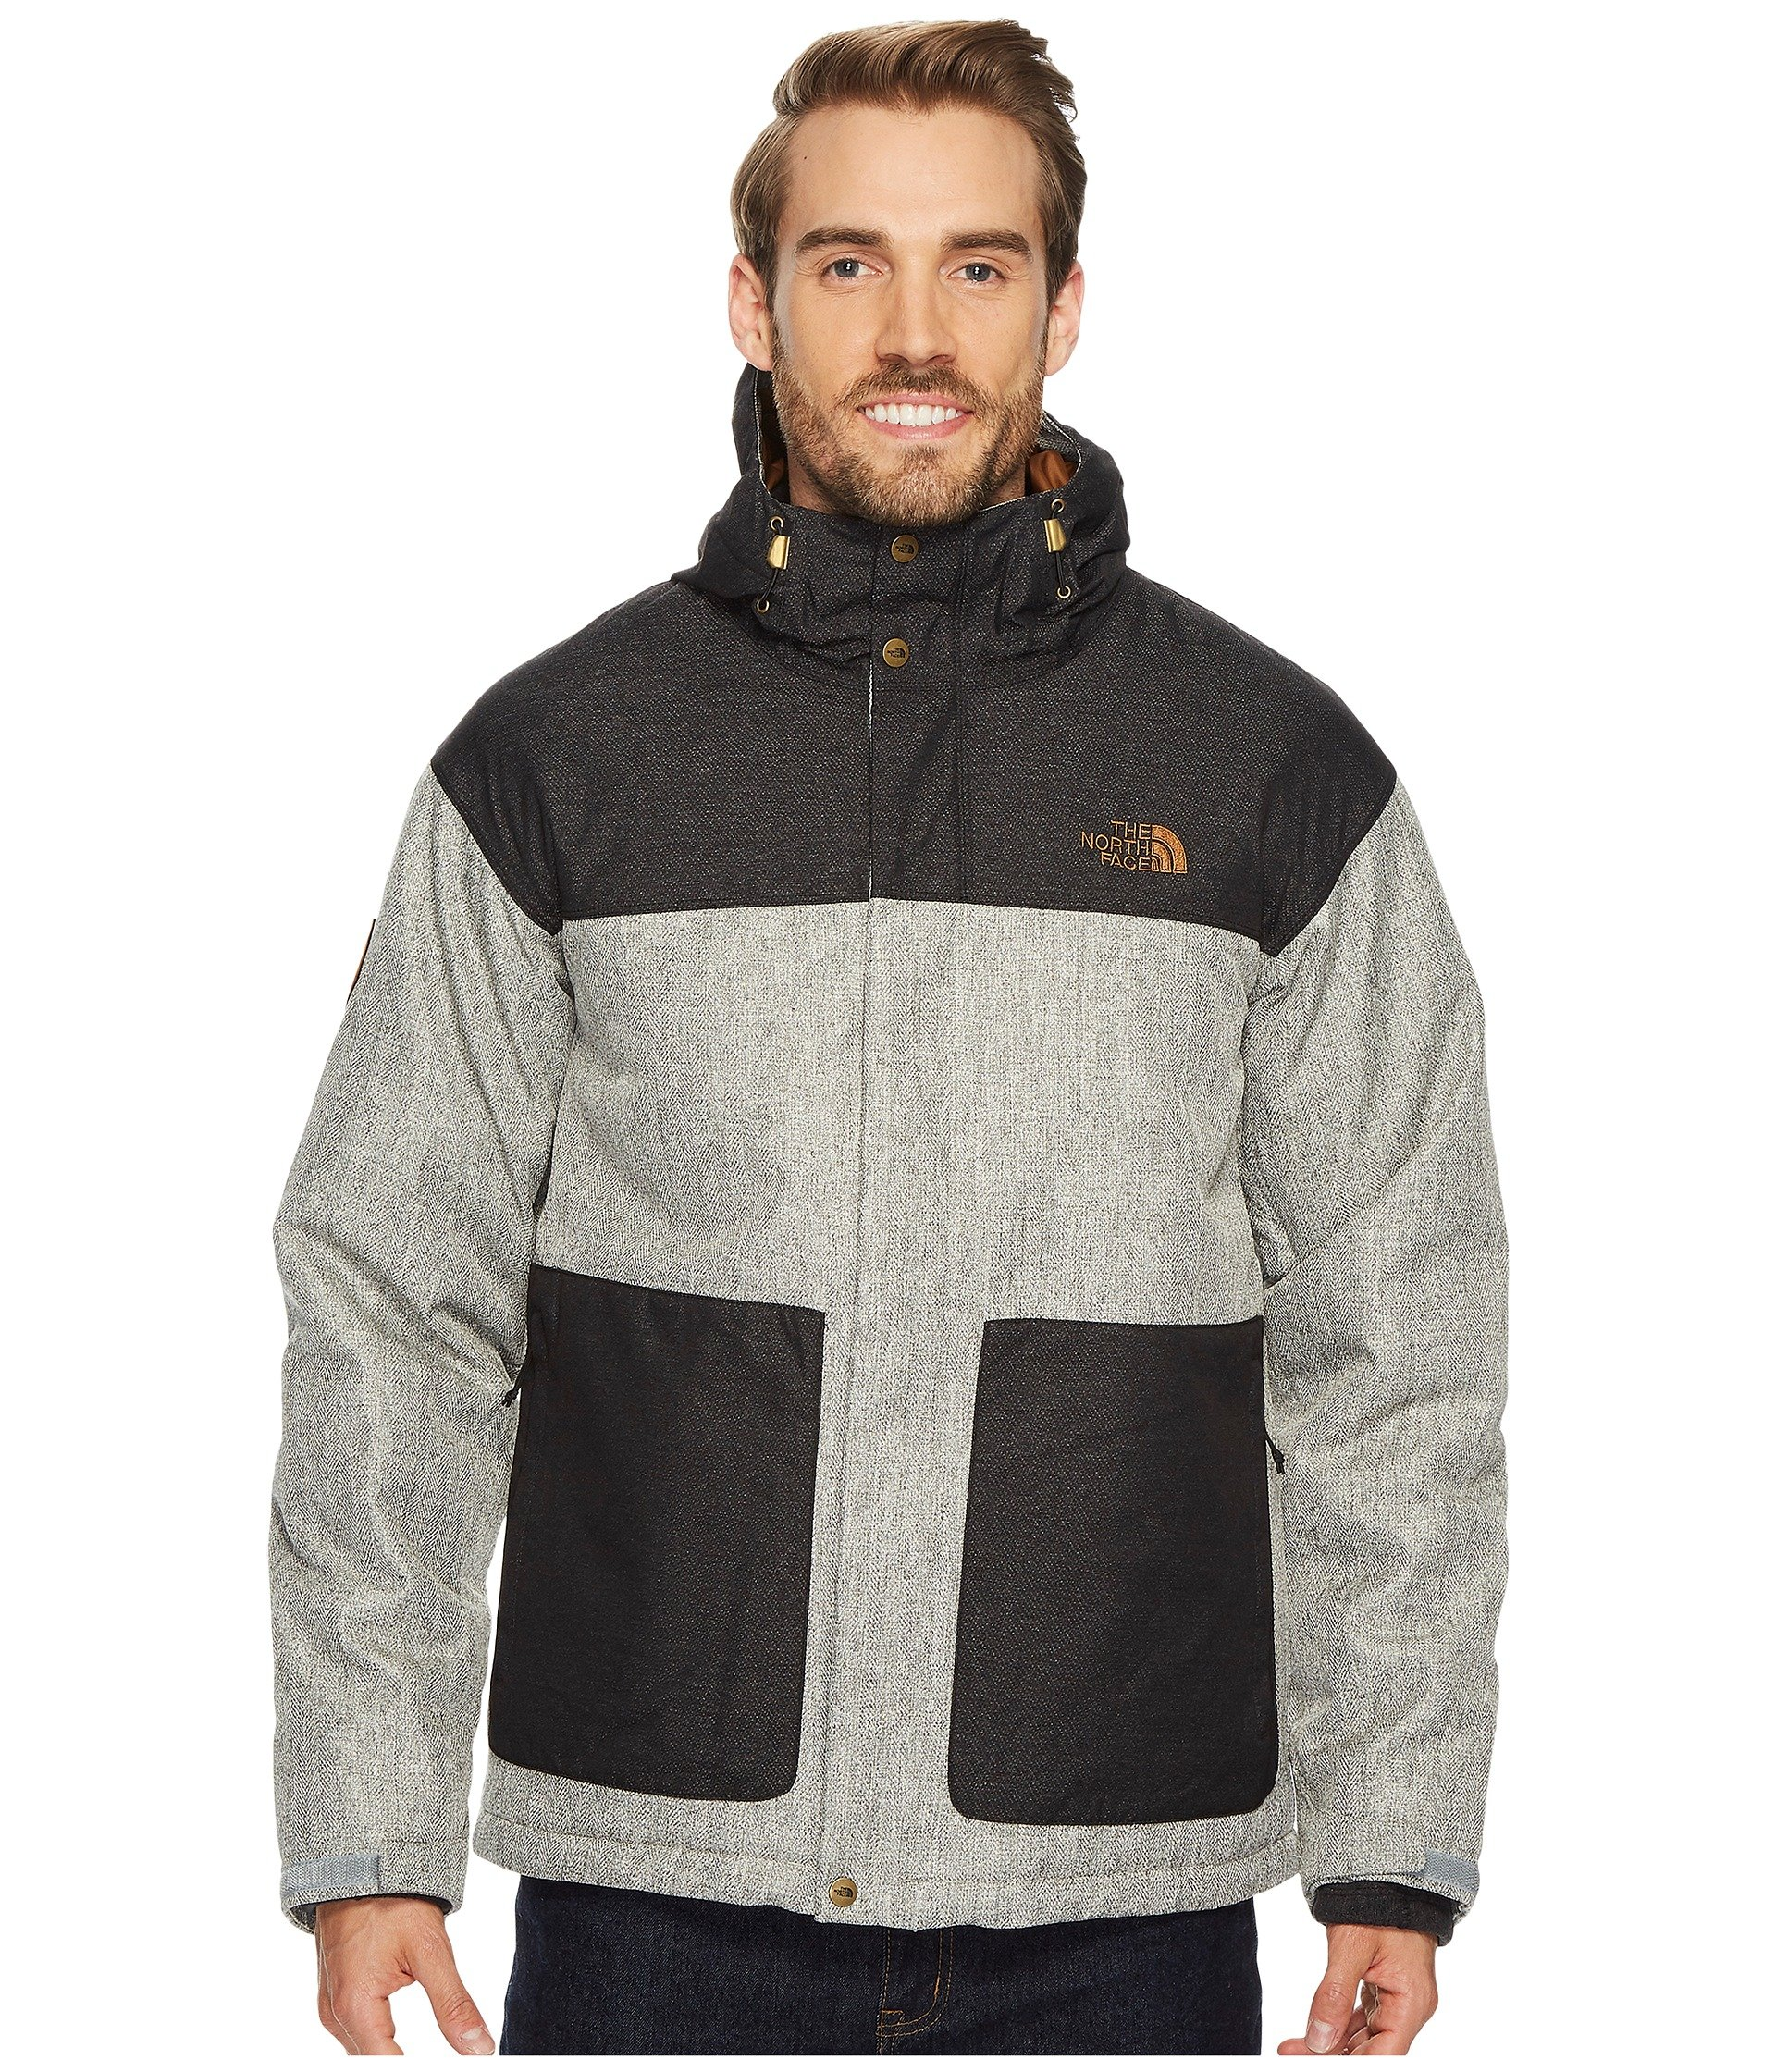 The North Face Fordyce Triclimate Jacket